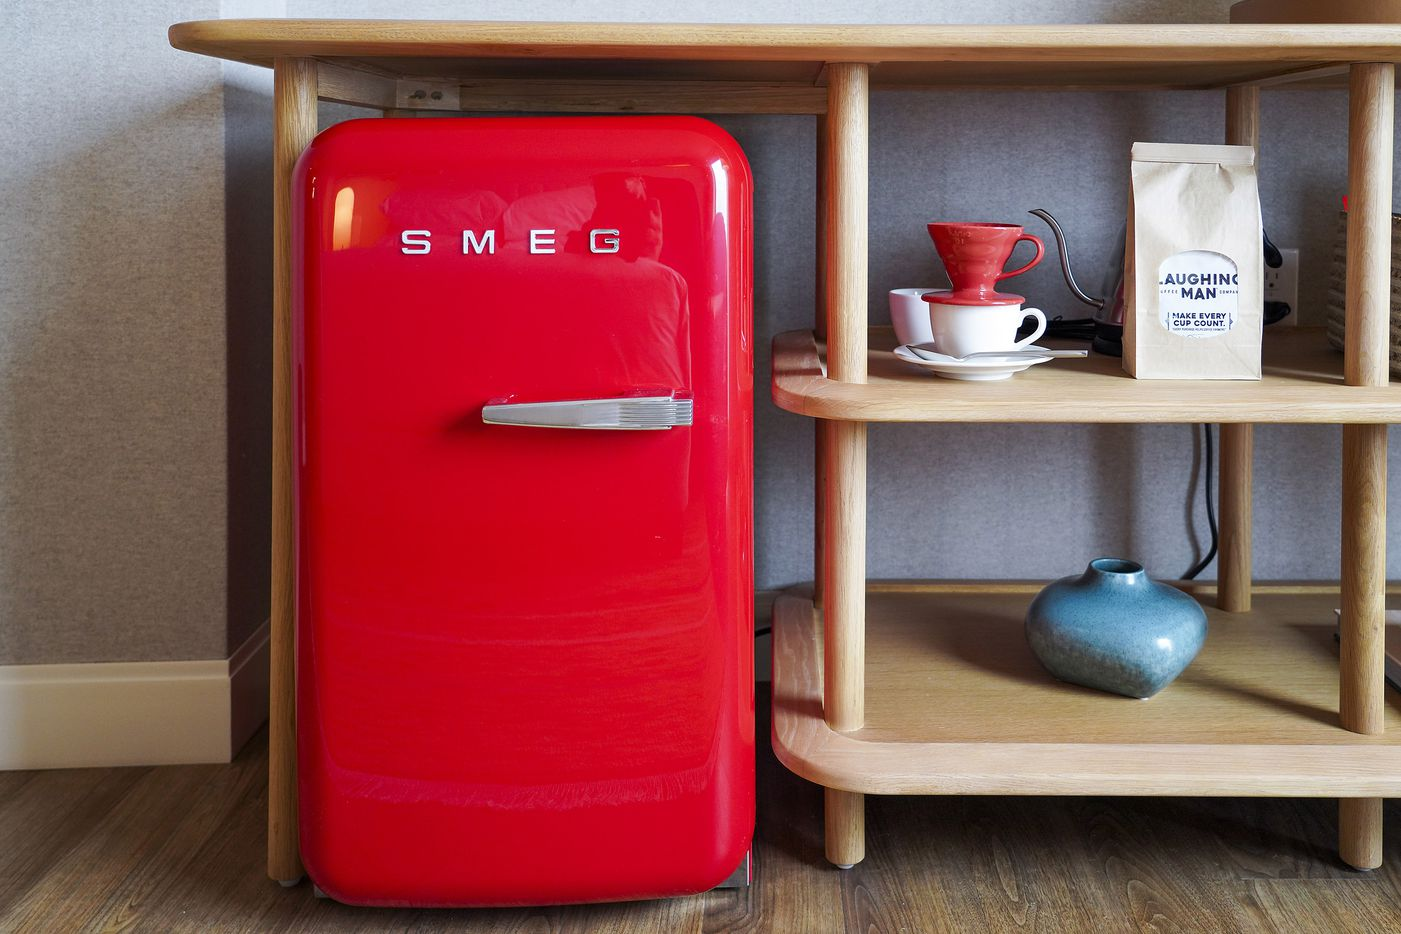 A SMEG mini-fridge and Laughing Man coffee service in a standard Chamber at new the Virgin Hotels Dallas on Monday, Dec. 16, 2019, in Dallas. The newly built hotel is at 1445 Turtle Creek in the Dallas Design District.